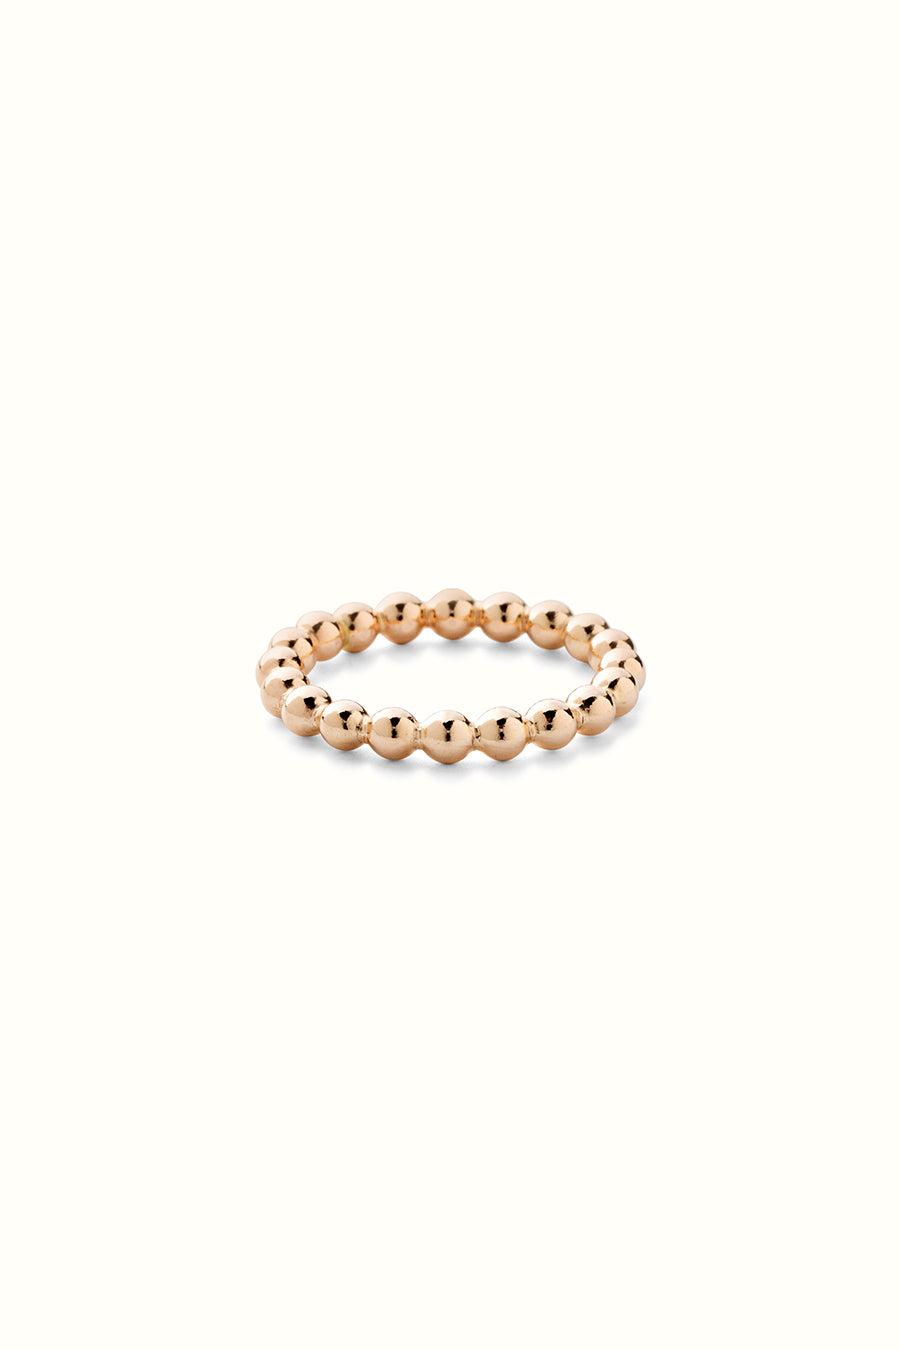 a chunky gold filled beaded style finger ring on a white background